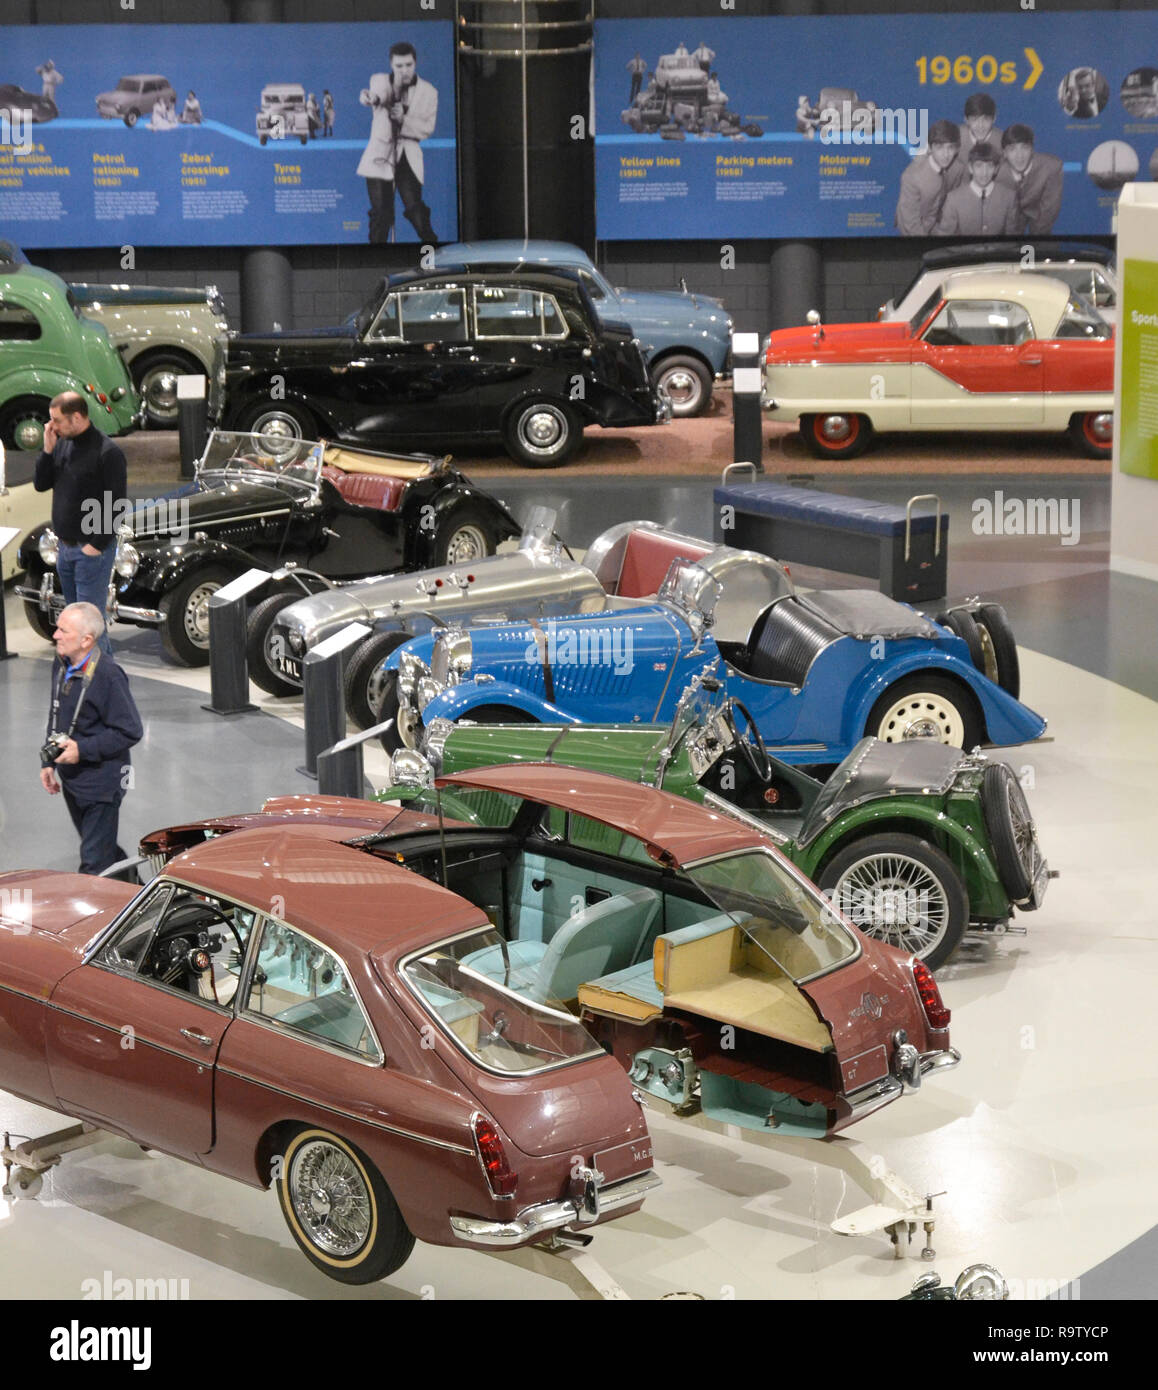 View of classic sports cars in the British Motor Museum, Gaydon, Warwickshire, UK. There's an MG cut in half among the collection. - Stock Image